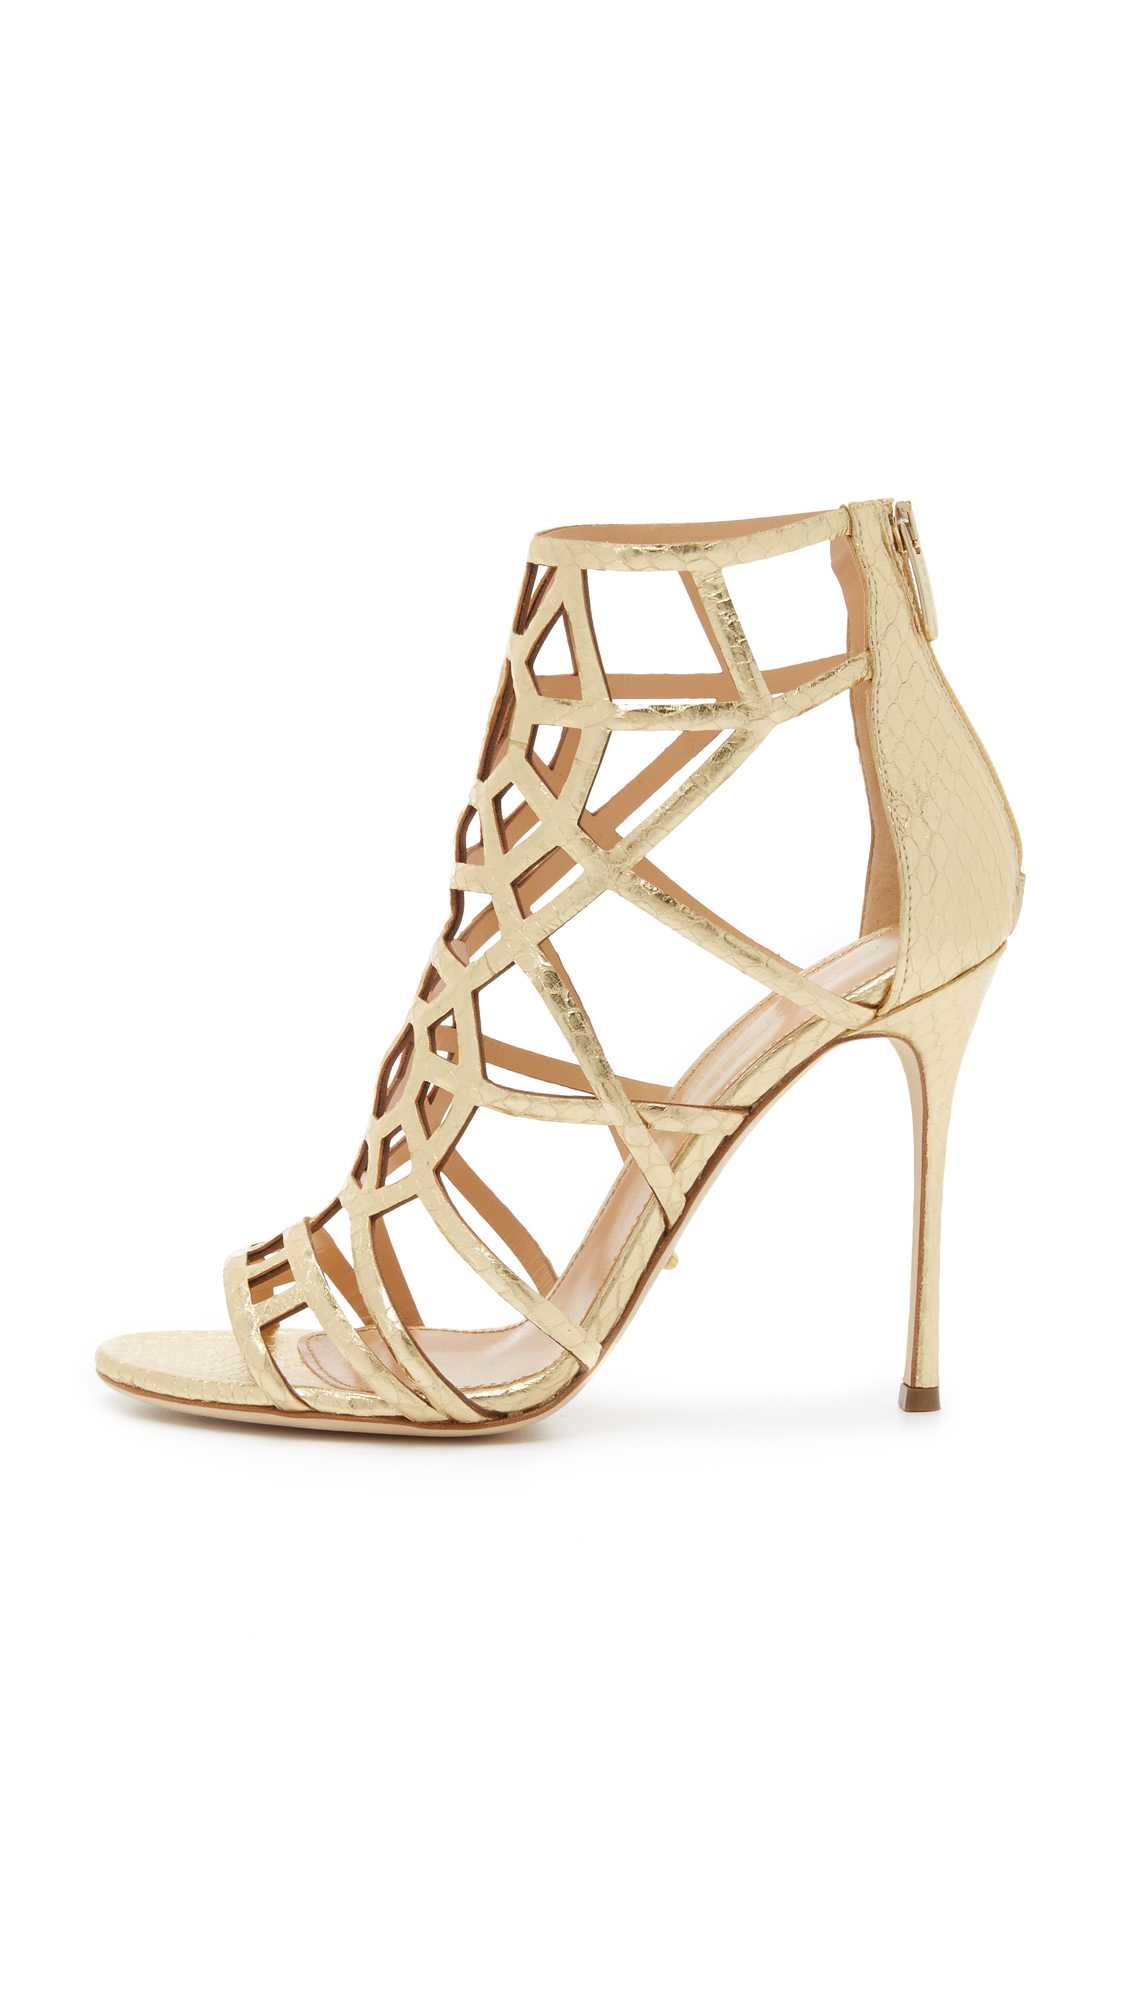 Sergio Rossi Cutout Leather Sandals sale authentic discount limited edition 2014 newest outlet order online discount pay with paypal lhRE6